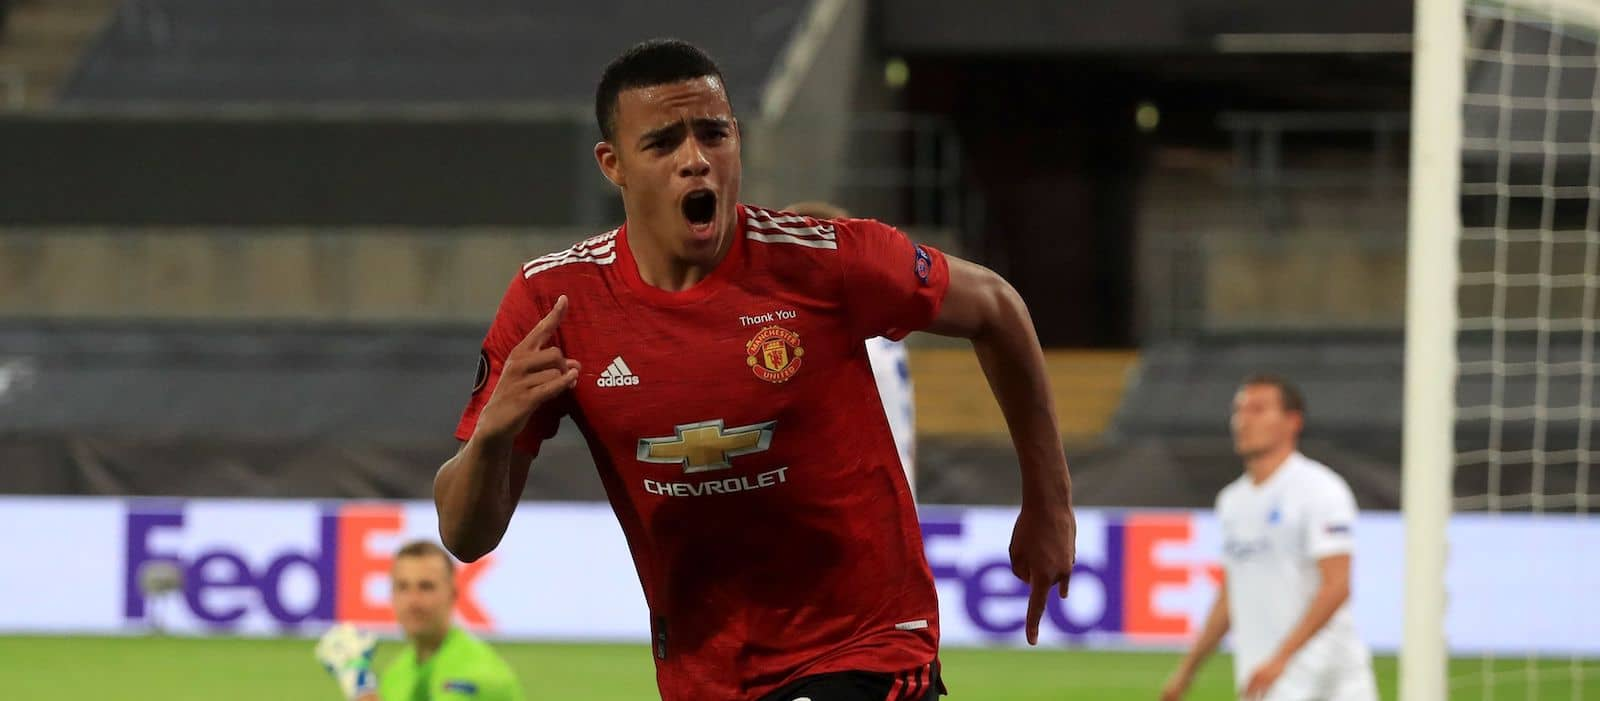 Gareth Southgate praises Man United's Mason Greenwood ahead of debut